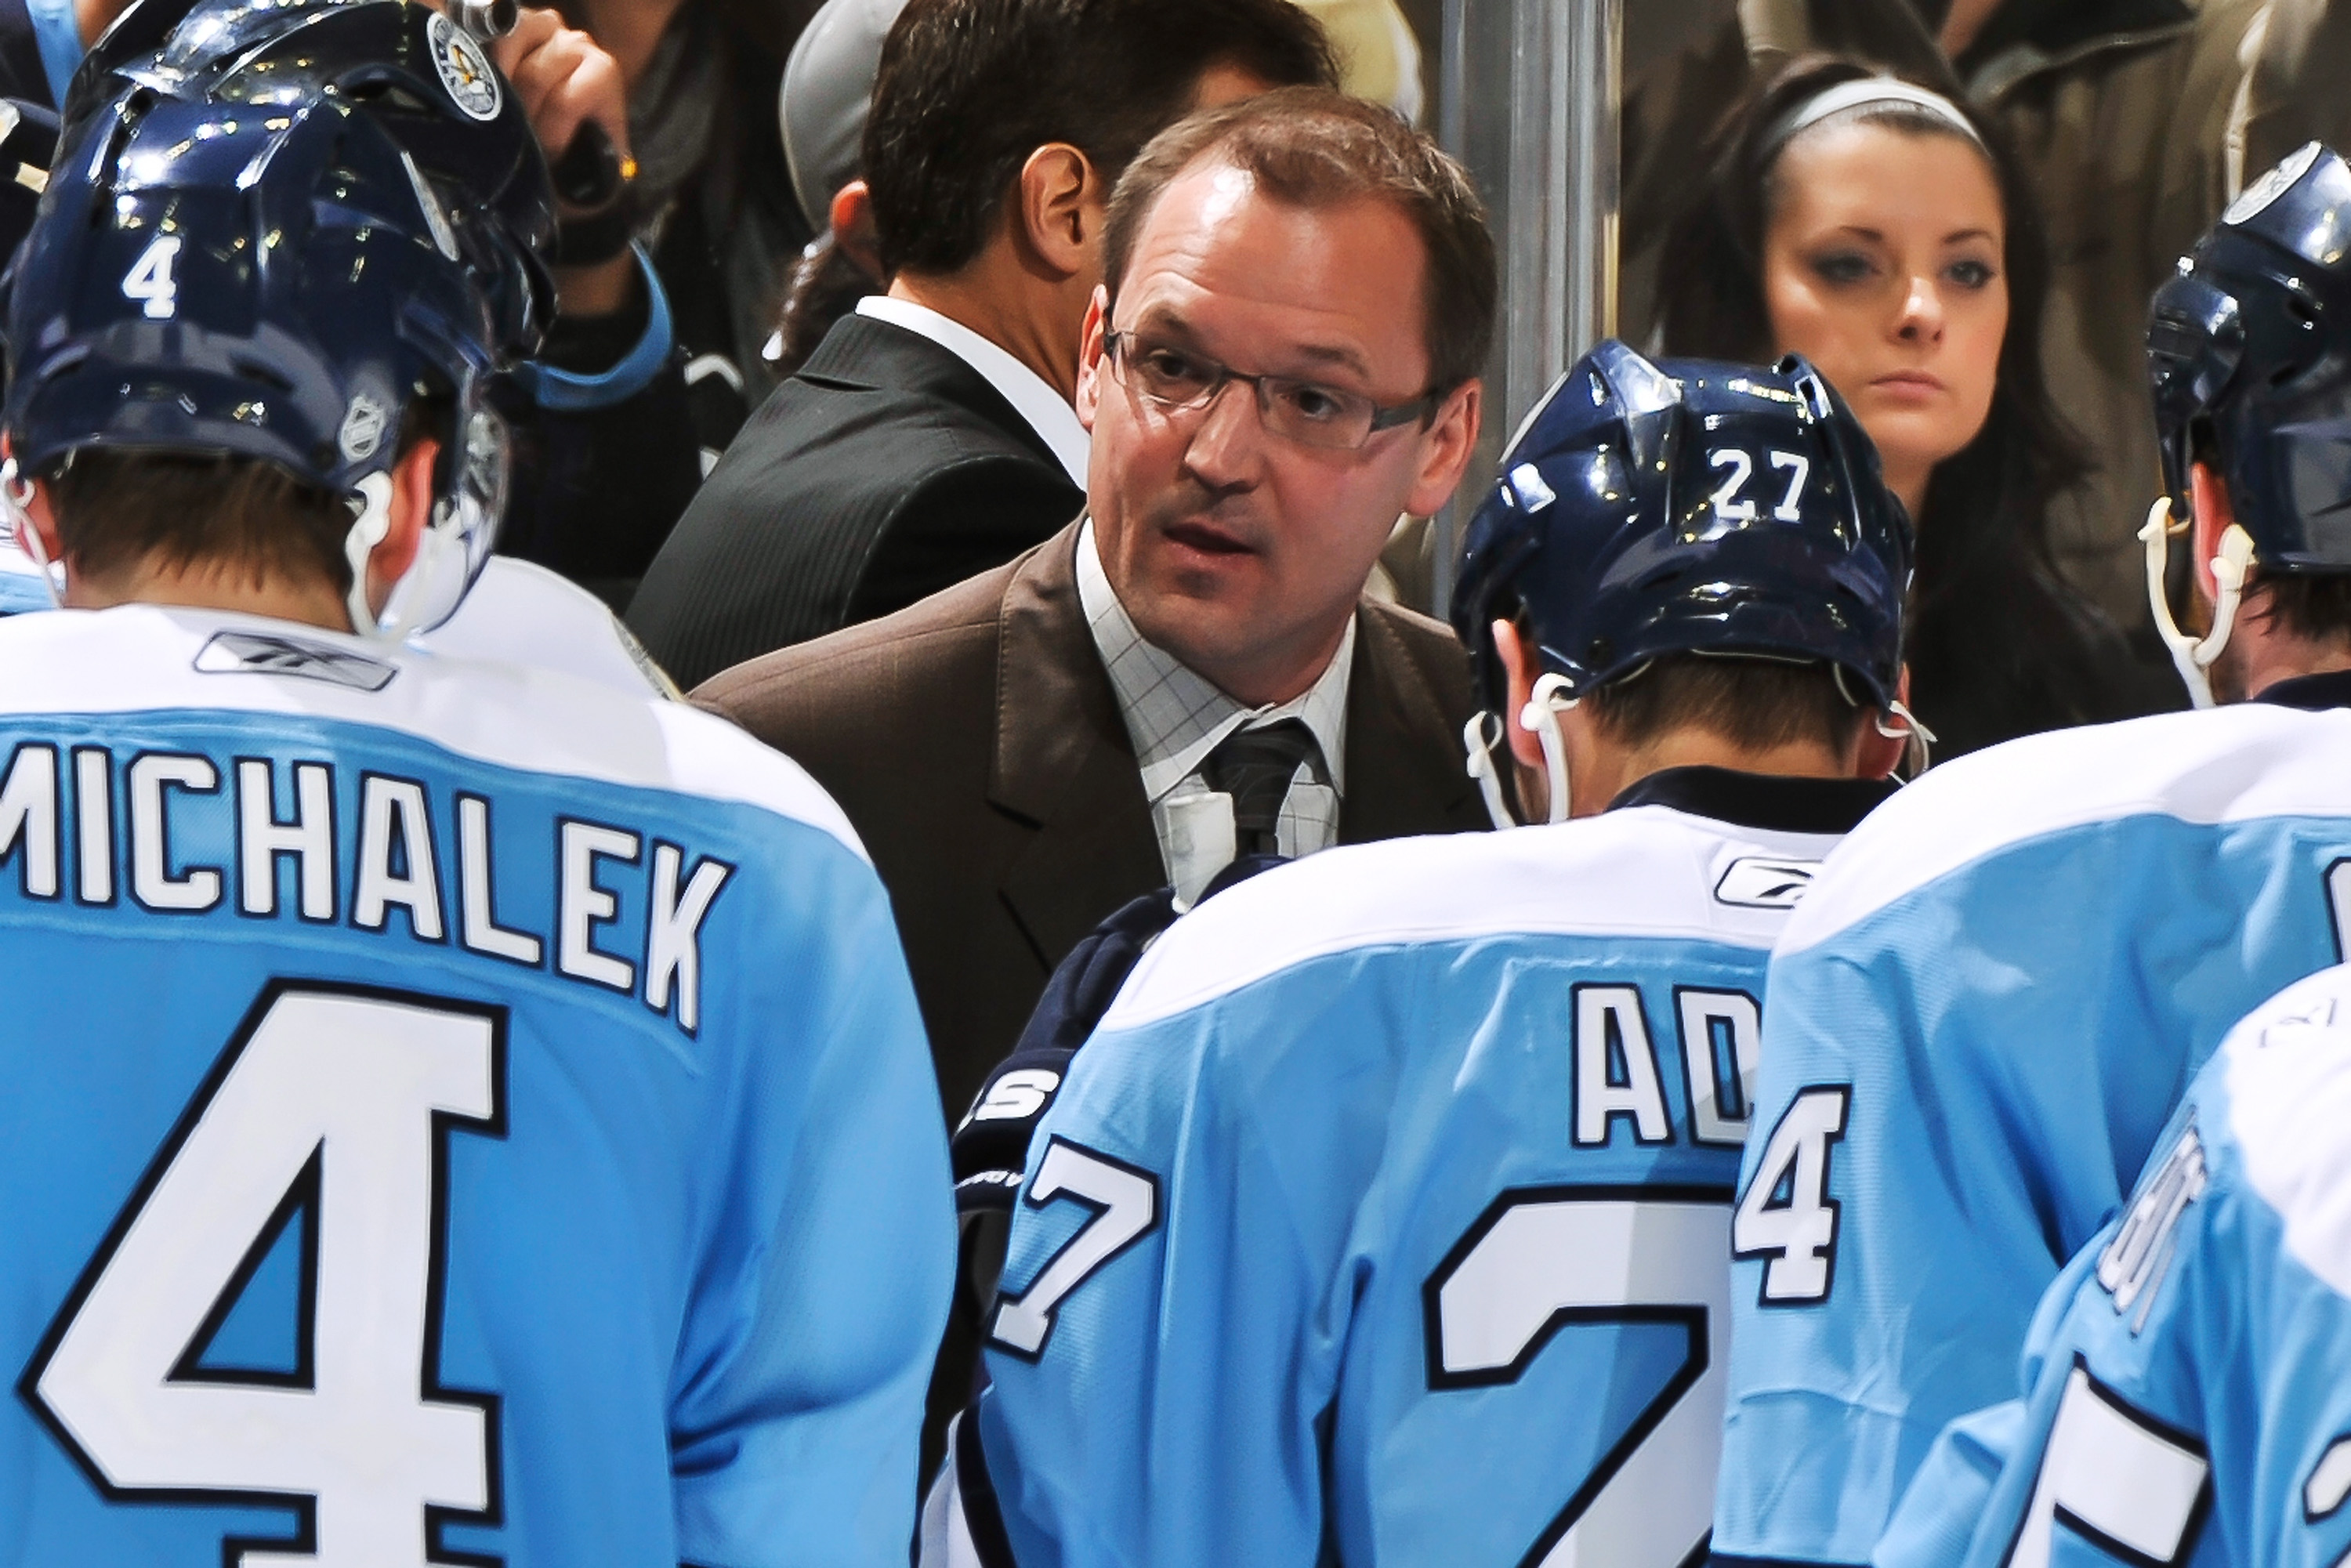 PITTSBURGH - NOVEMBER 17:  Head Coach Dan Bylsma of the Pittsburgh Penguins addresses his players during a timeout in a game against the Vancouver Canucks on November 17, 2010 at Consol Energy Center in Pittsburgh, Pennsylvania.  (Photo by Jamie Sabau/Get